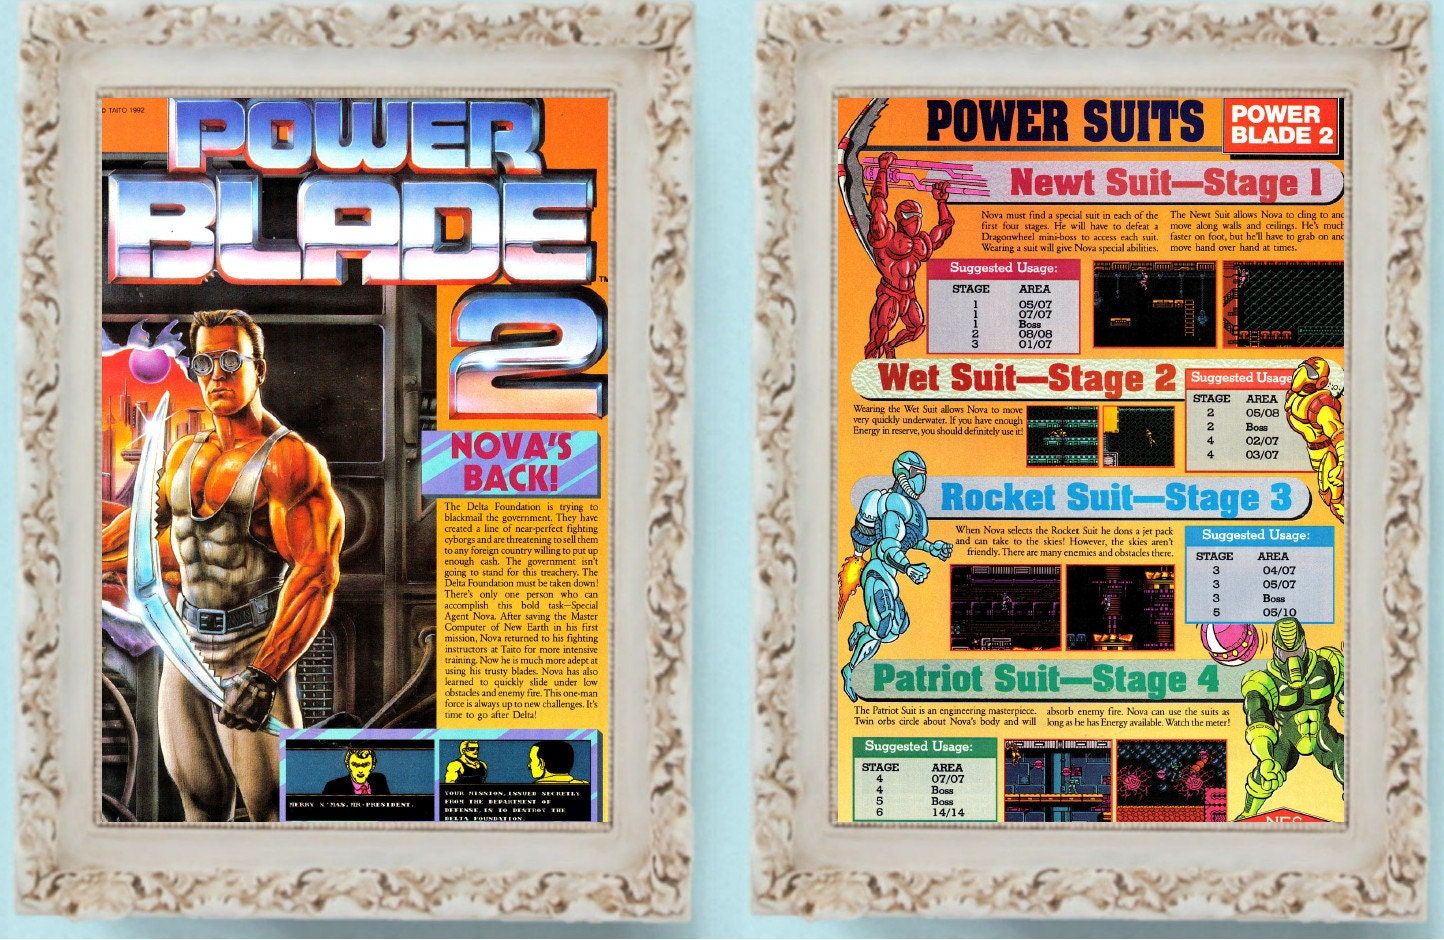 1992 Power Blade 2 Nes Nintendo Page Vintage Video Game Ad Powerblade Pro Boot Only Zoom